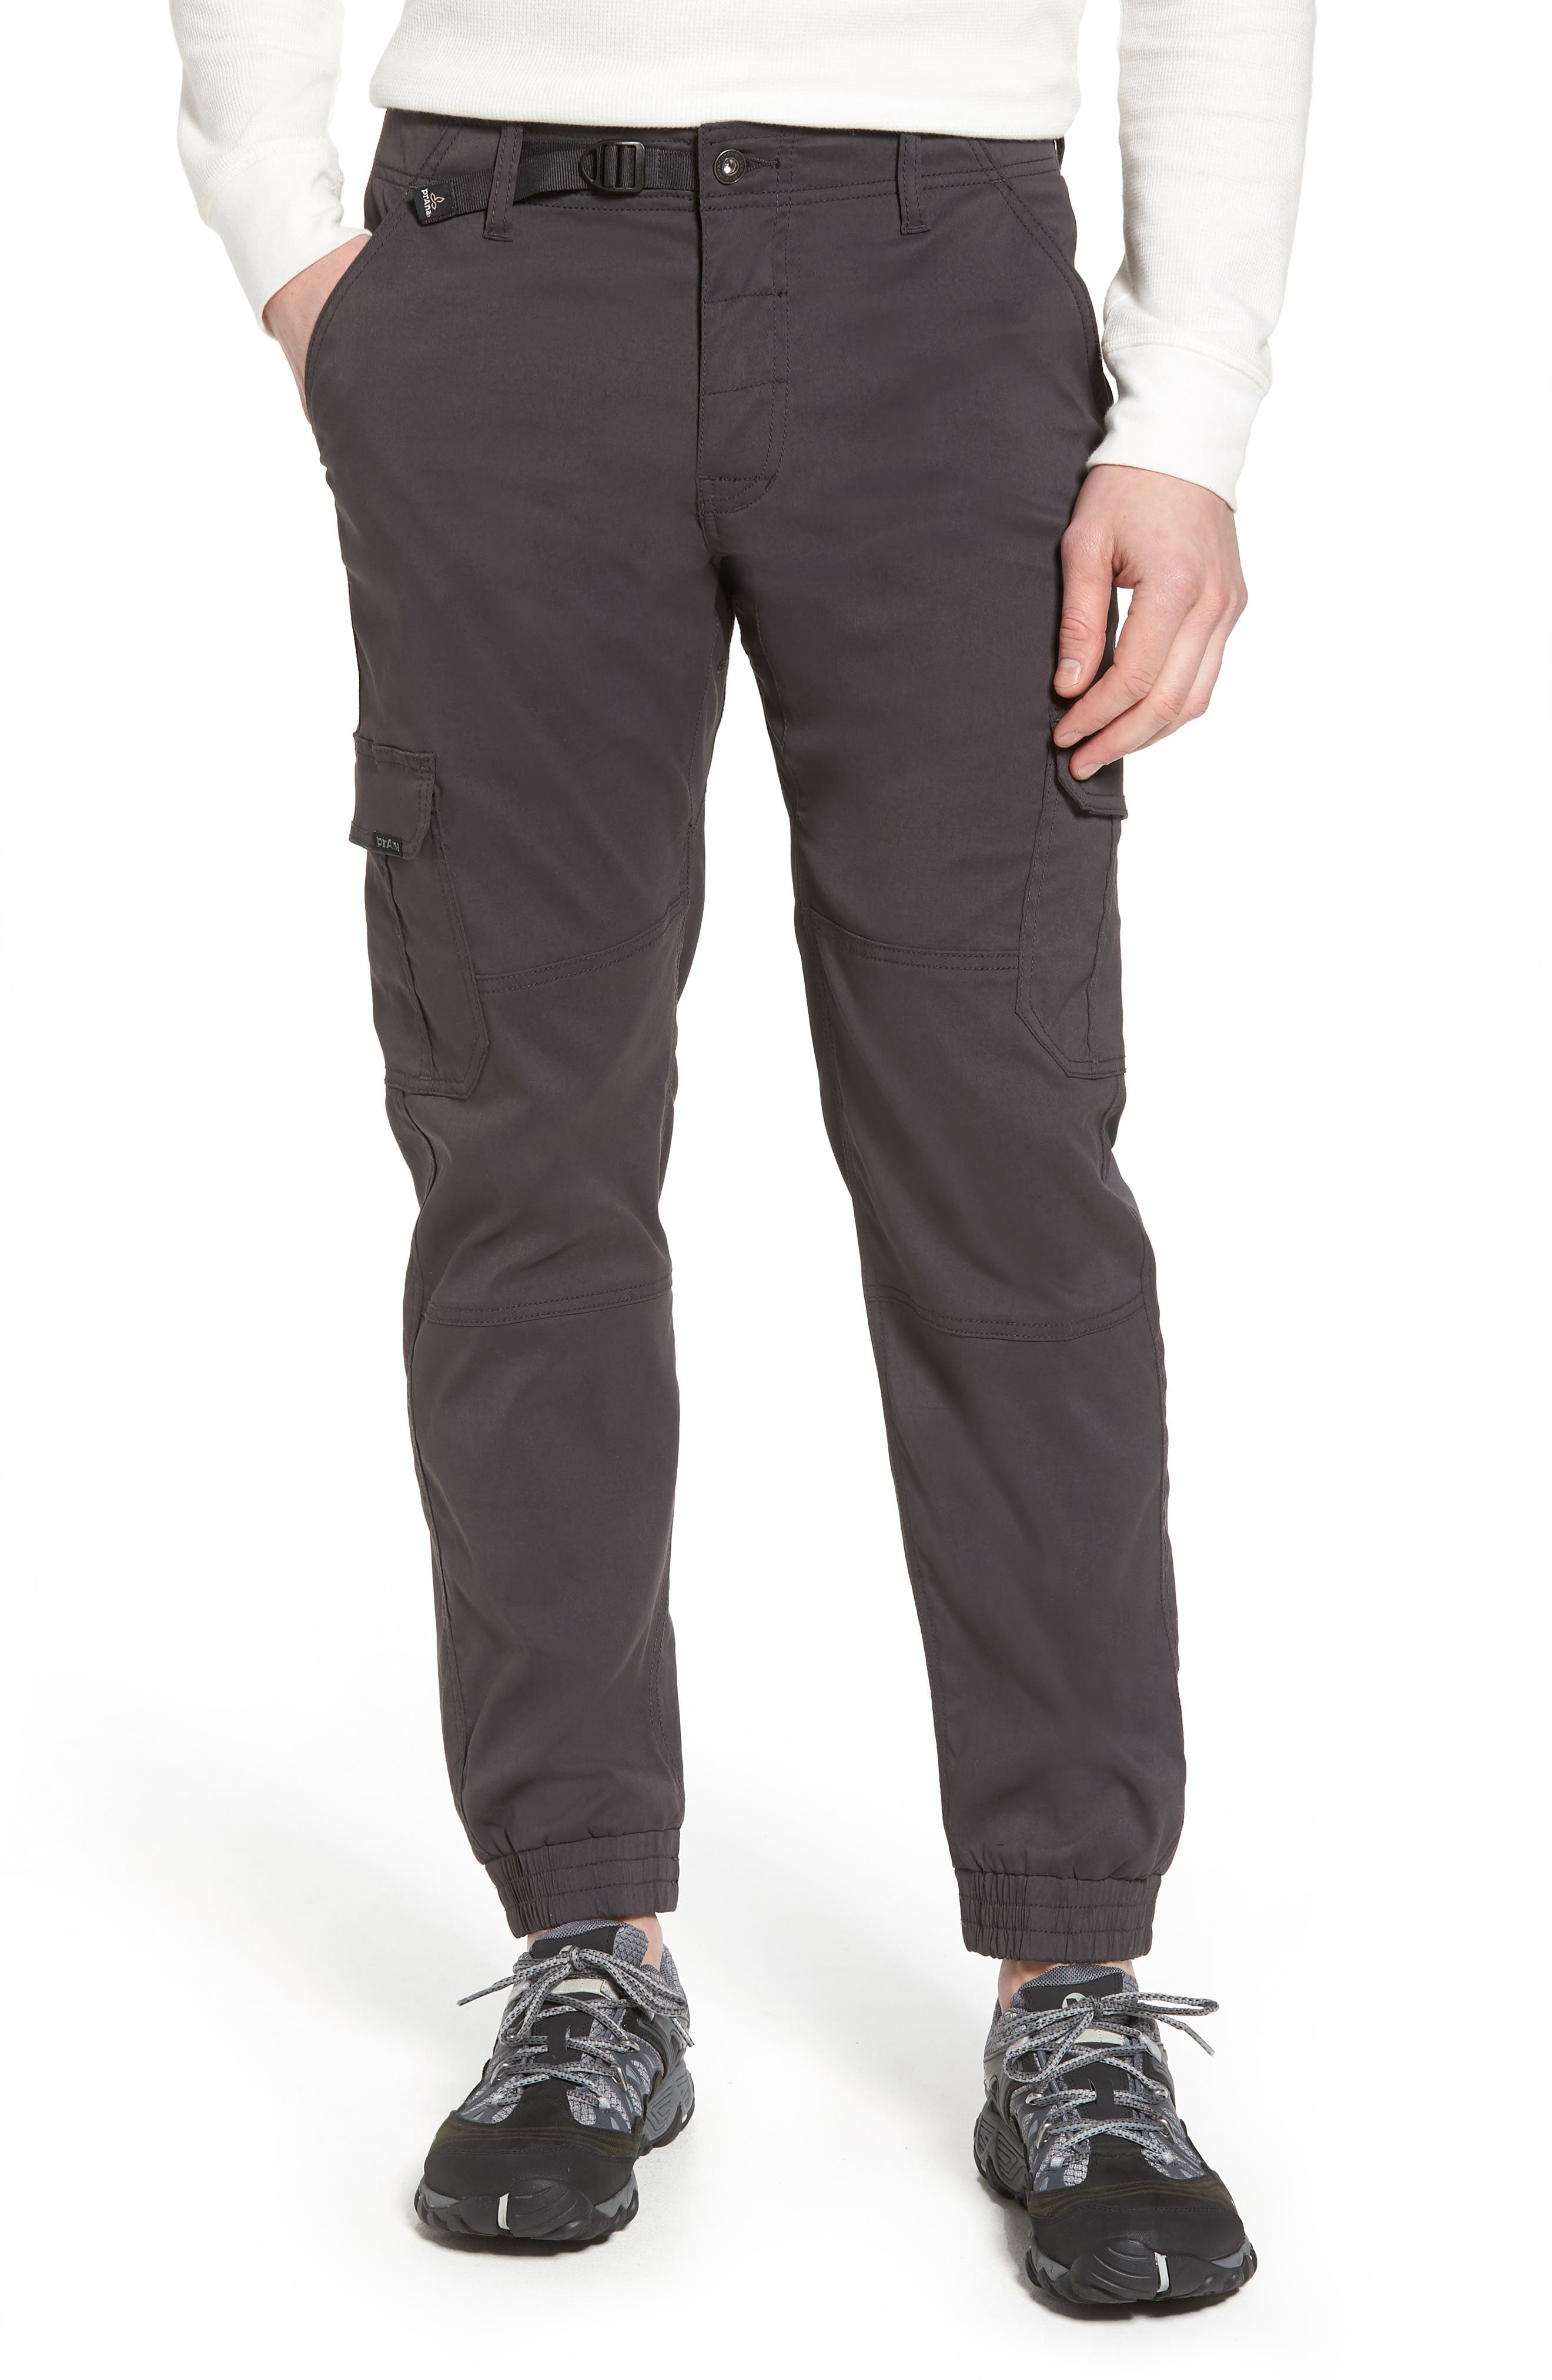 Zion Water Repellent Stretch Jogger Pants,                             Main thumbnail 1, color,                             Charcoal